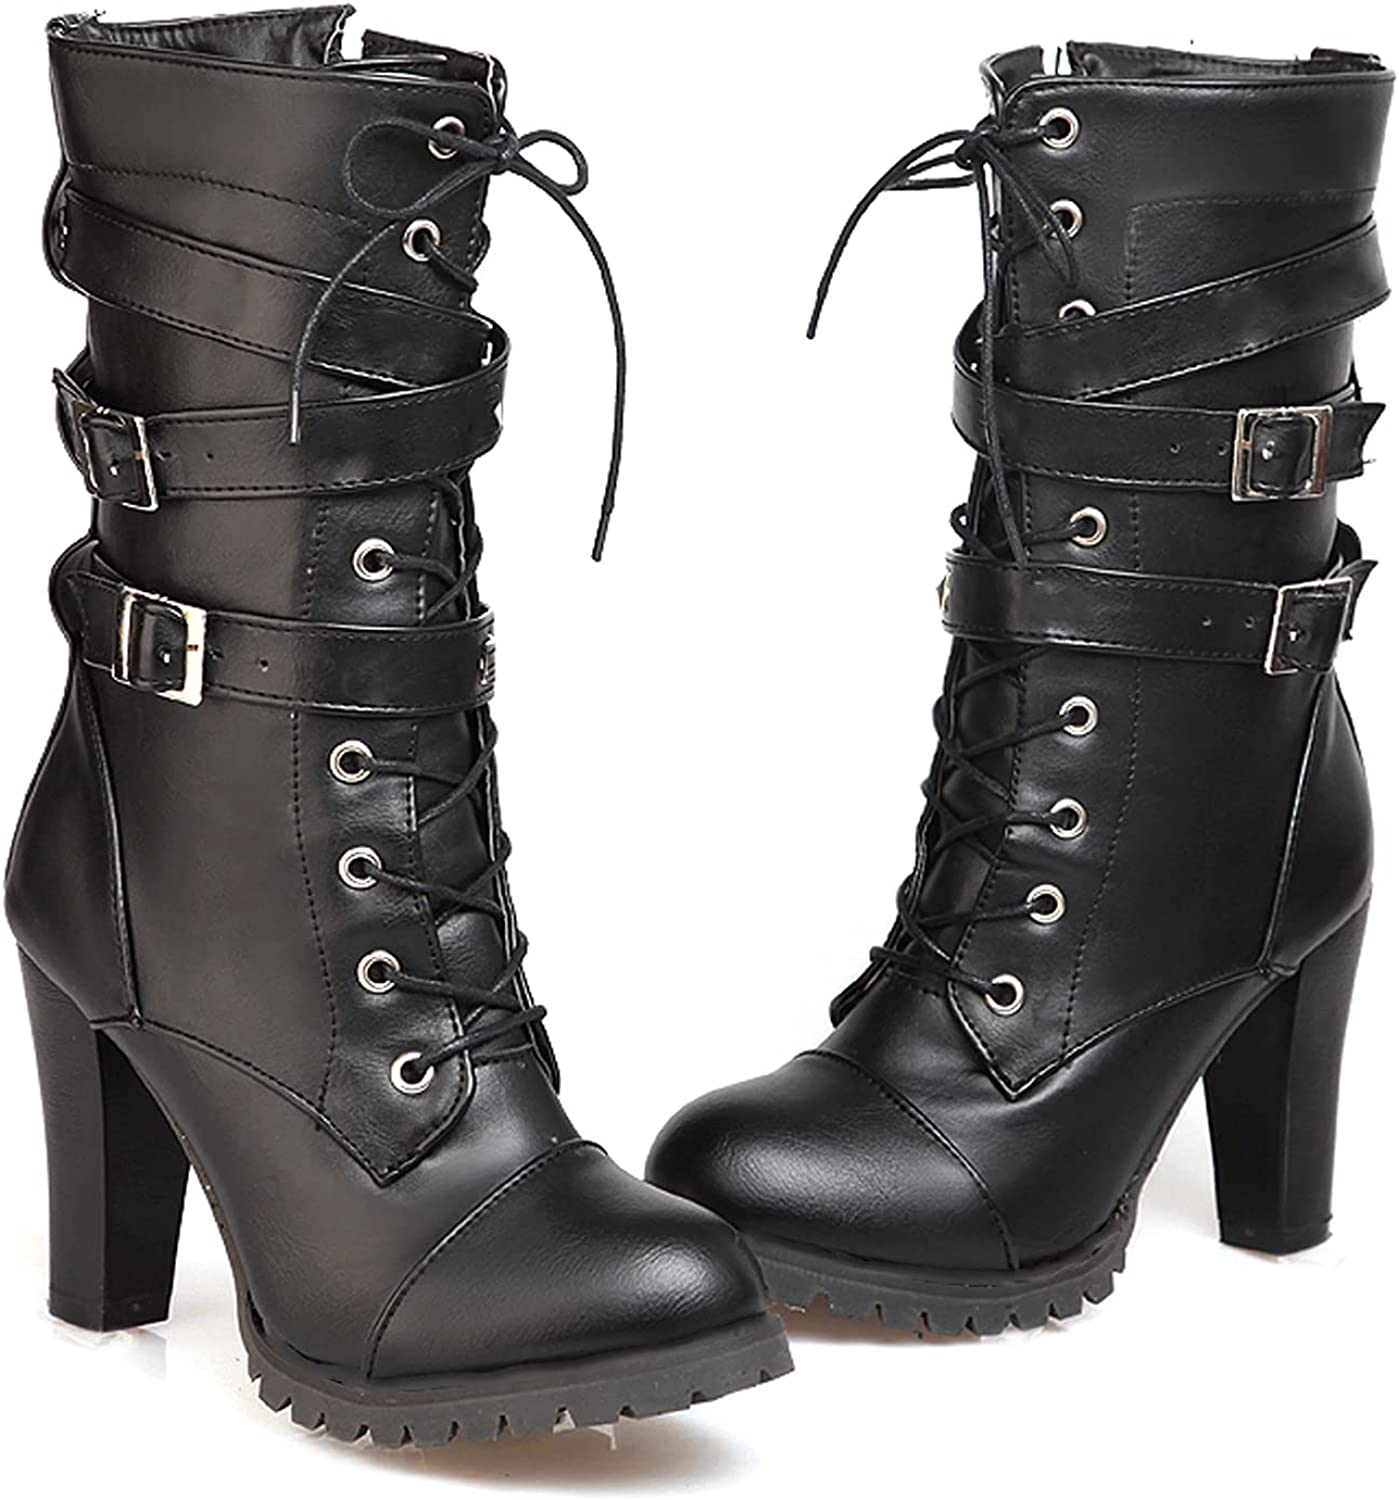 SaraIris Women's Boots Chunky High Heel Mid Calf Boots Lace-up Buckle Strap Round Toe Punk Knight Boots Motorcycle Boots